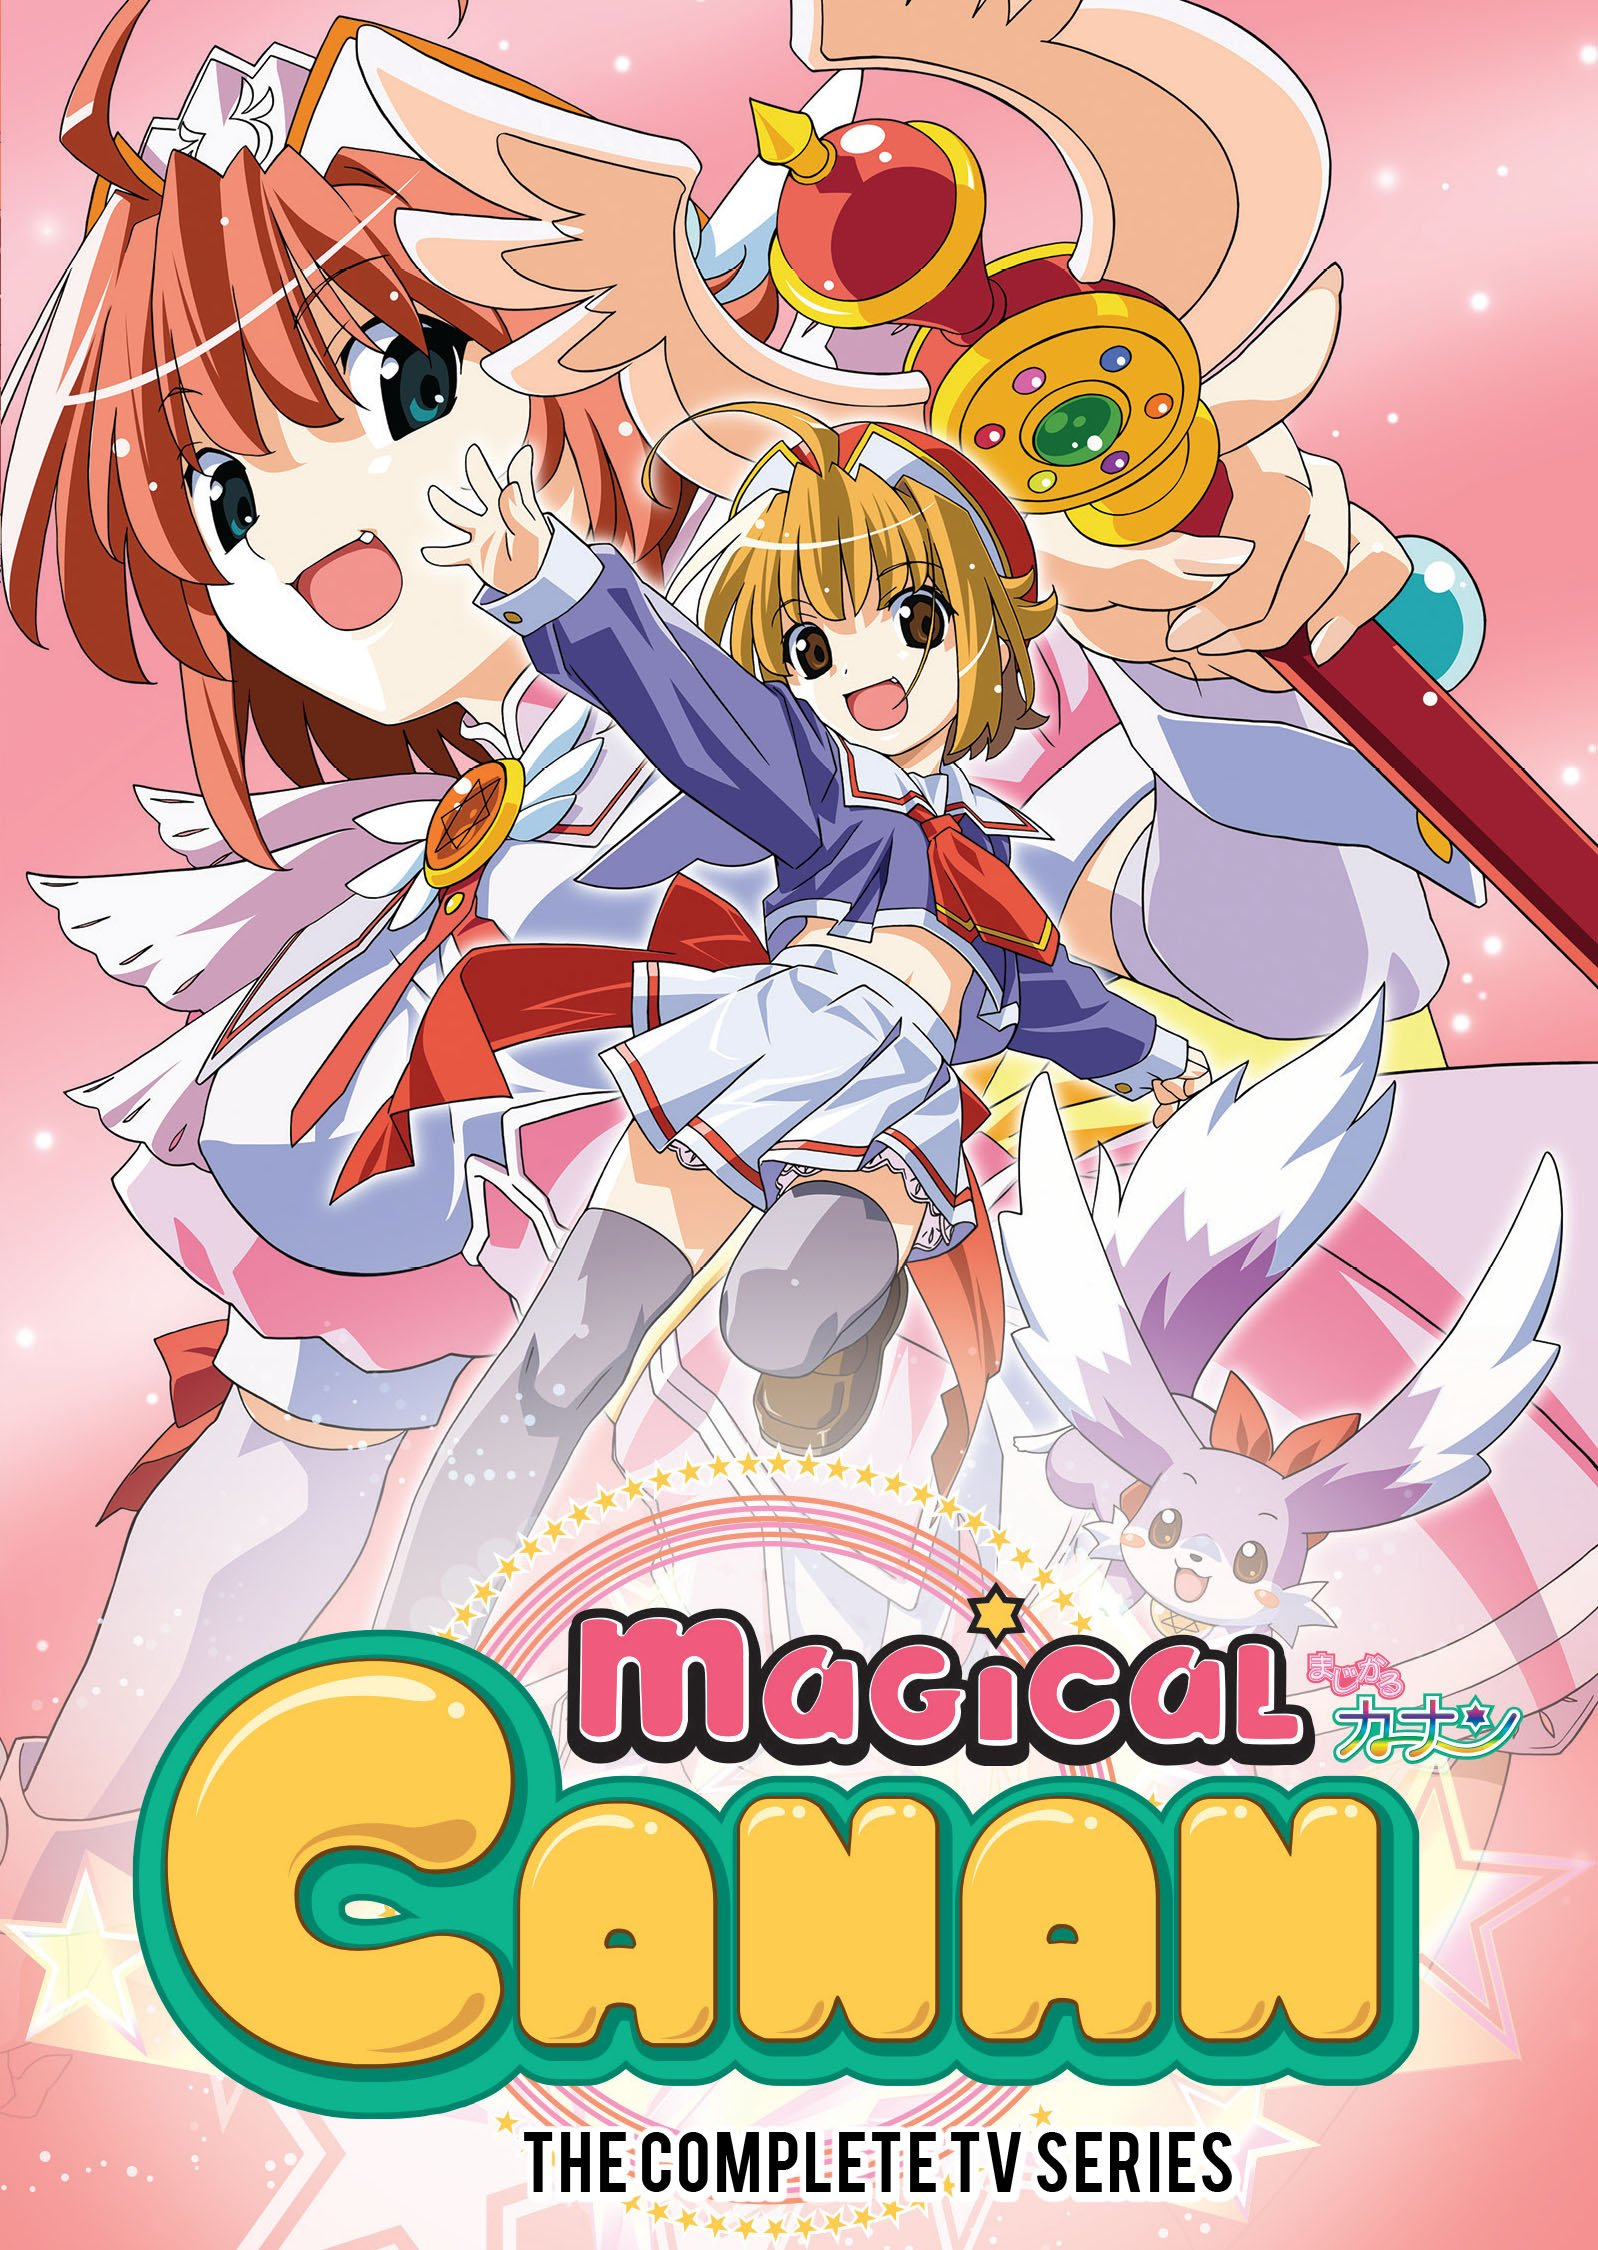 MAGICAL CANAN: COMPLETE TV SERIES - Magical Canan: Complete TV Series (2PC)